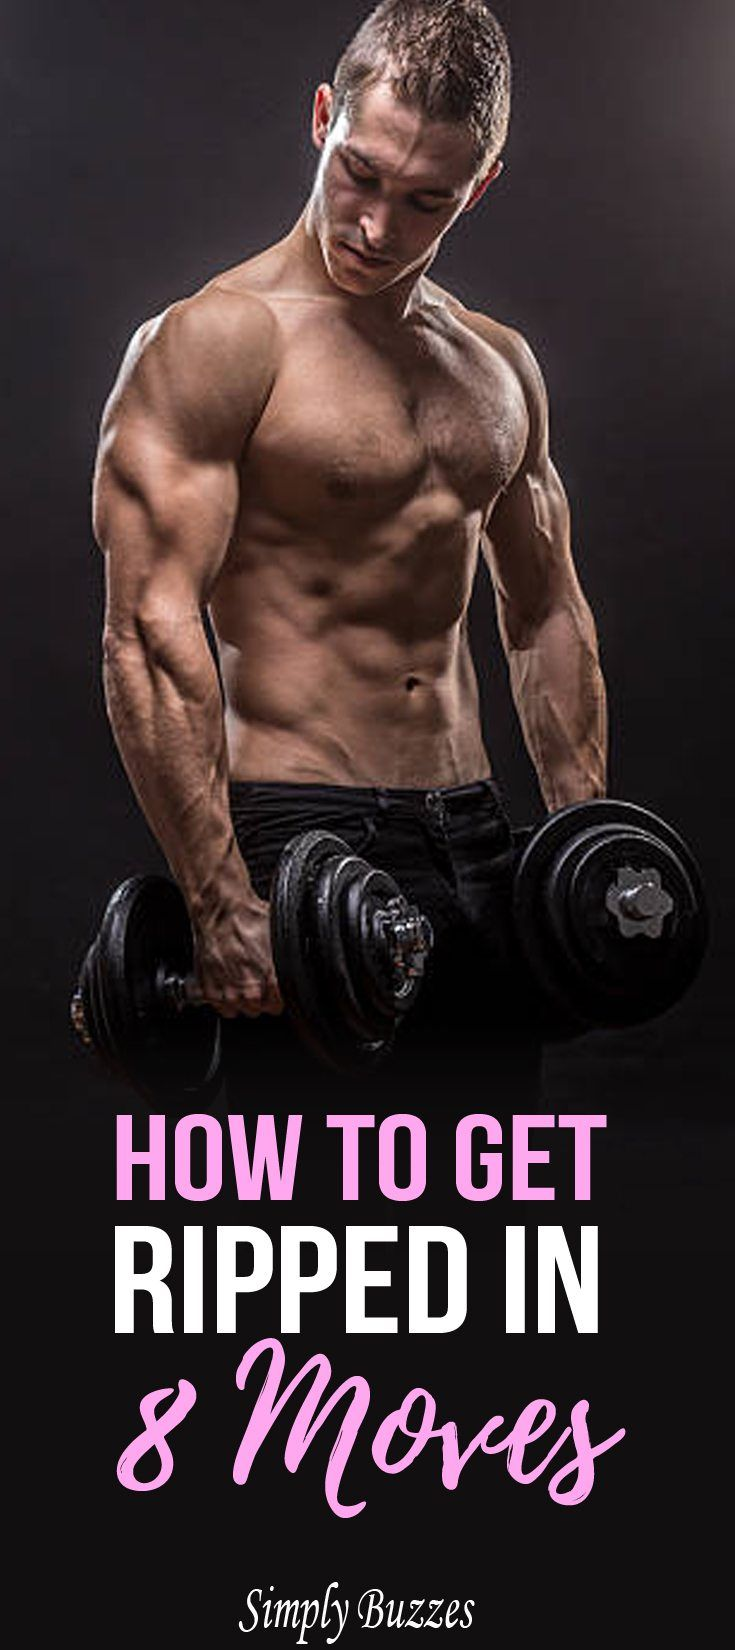 How To Get Ripped In 8 Moves Fitness Get Ripped Get Ripped Fast